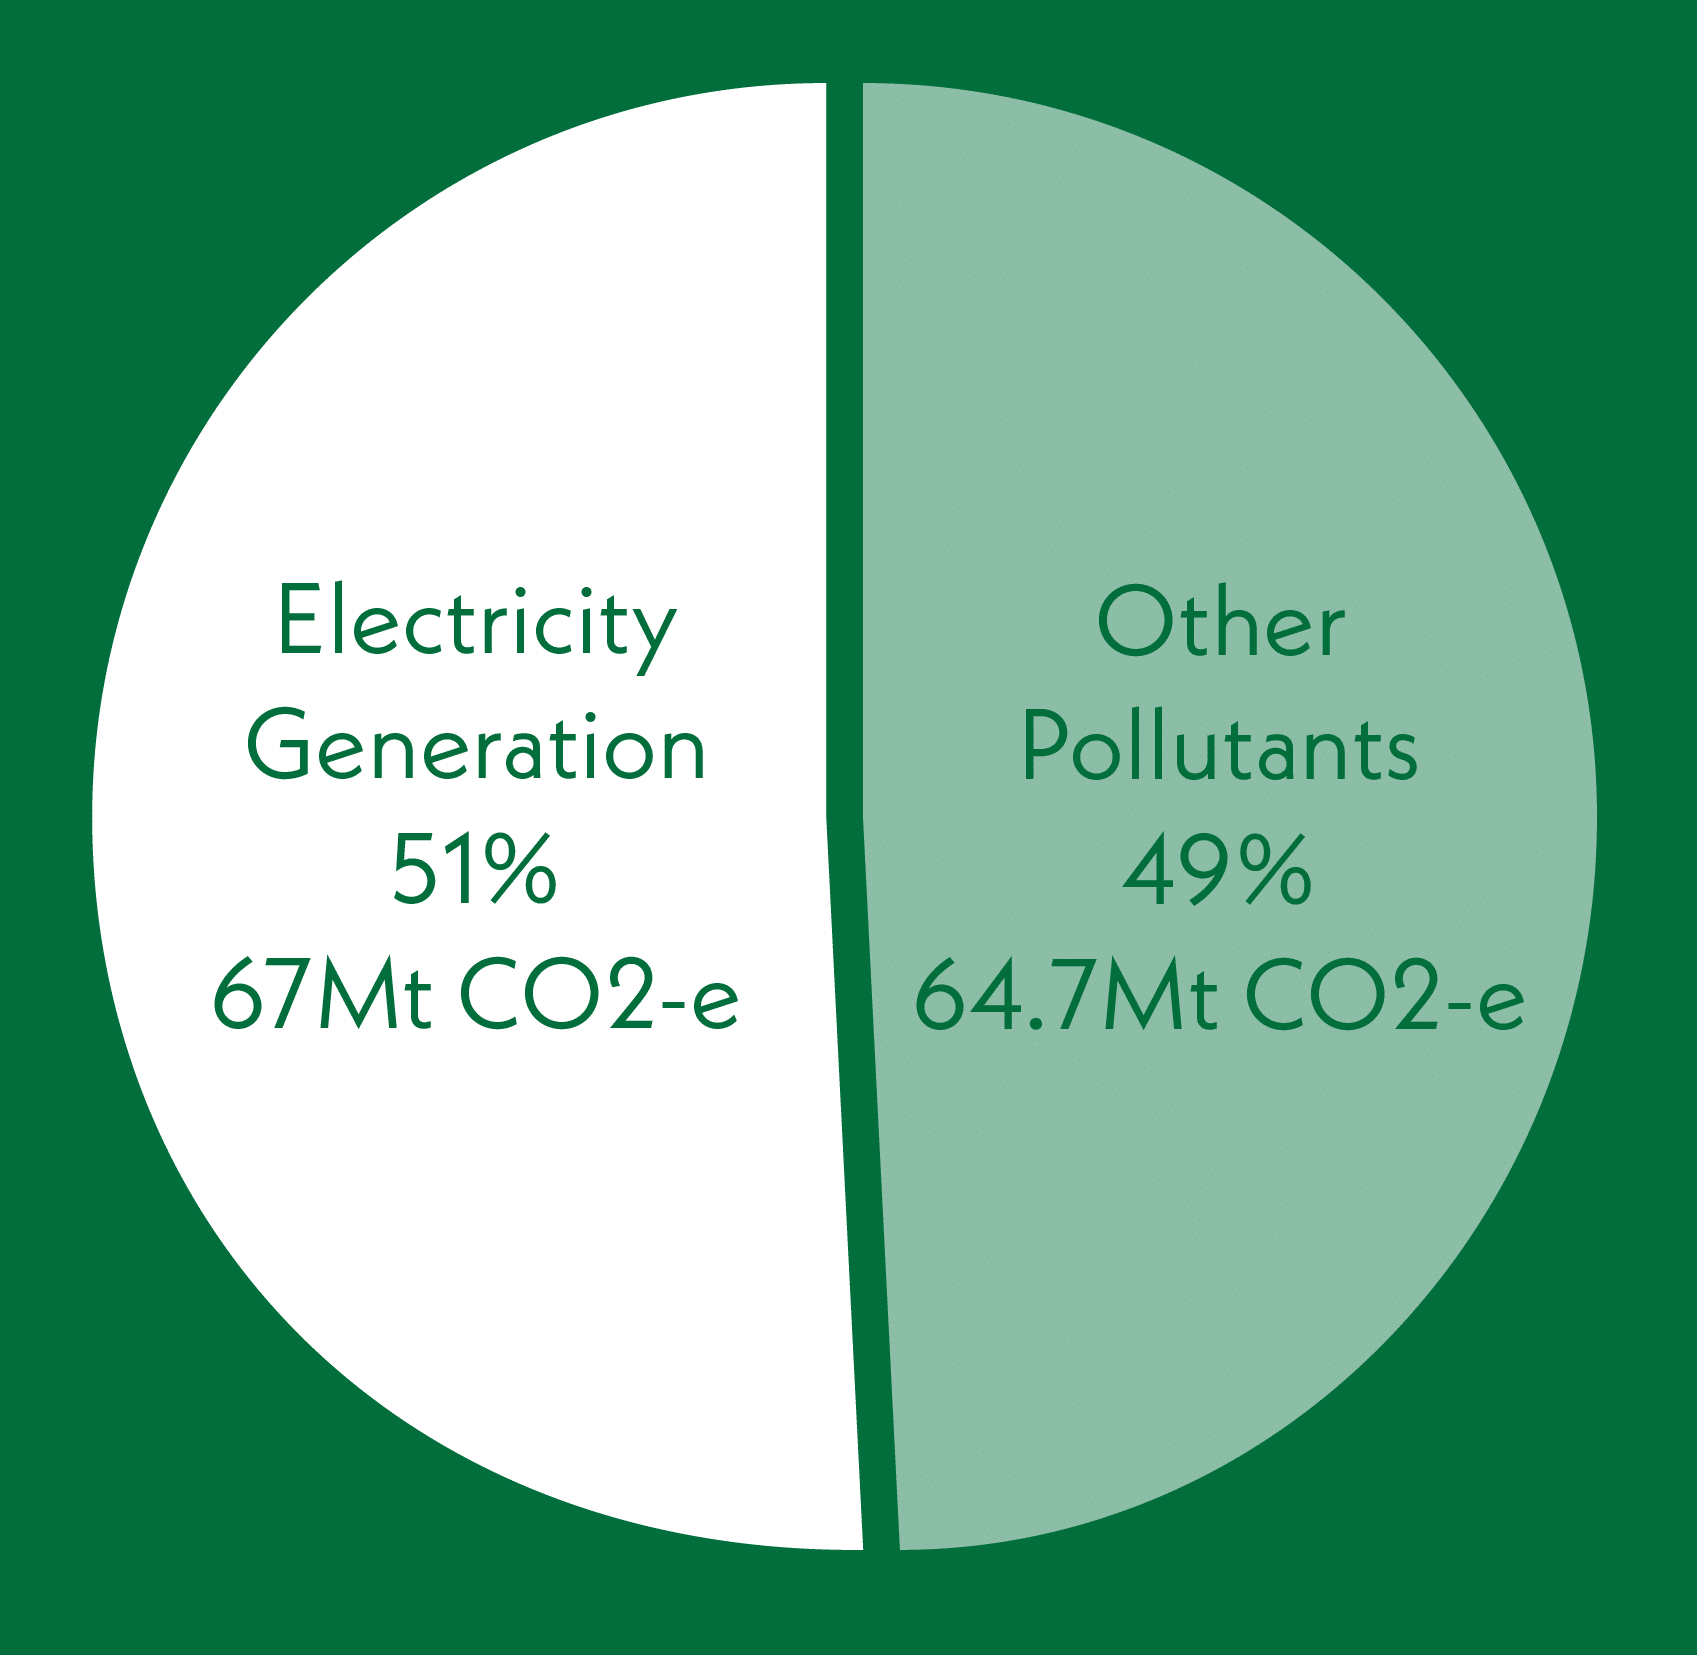 chart Electricity Generation vs Other Pollutants